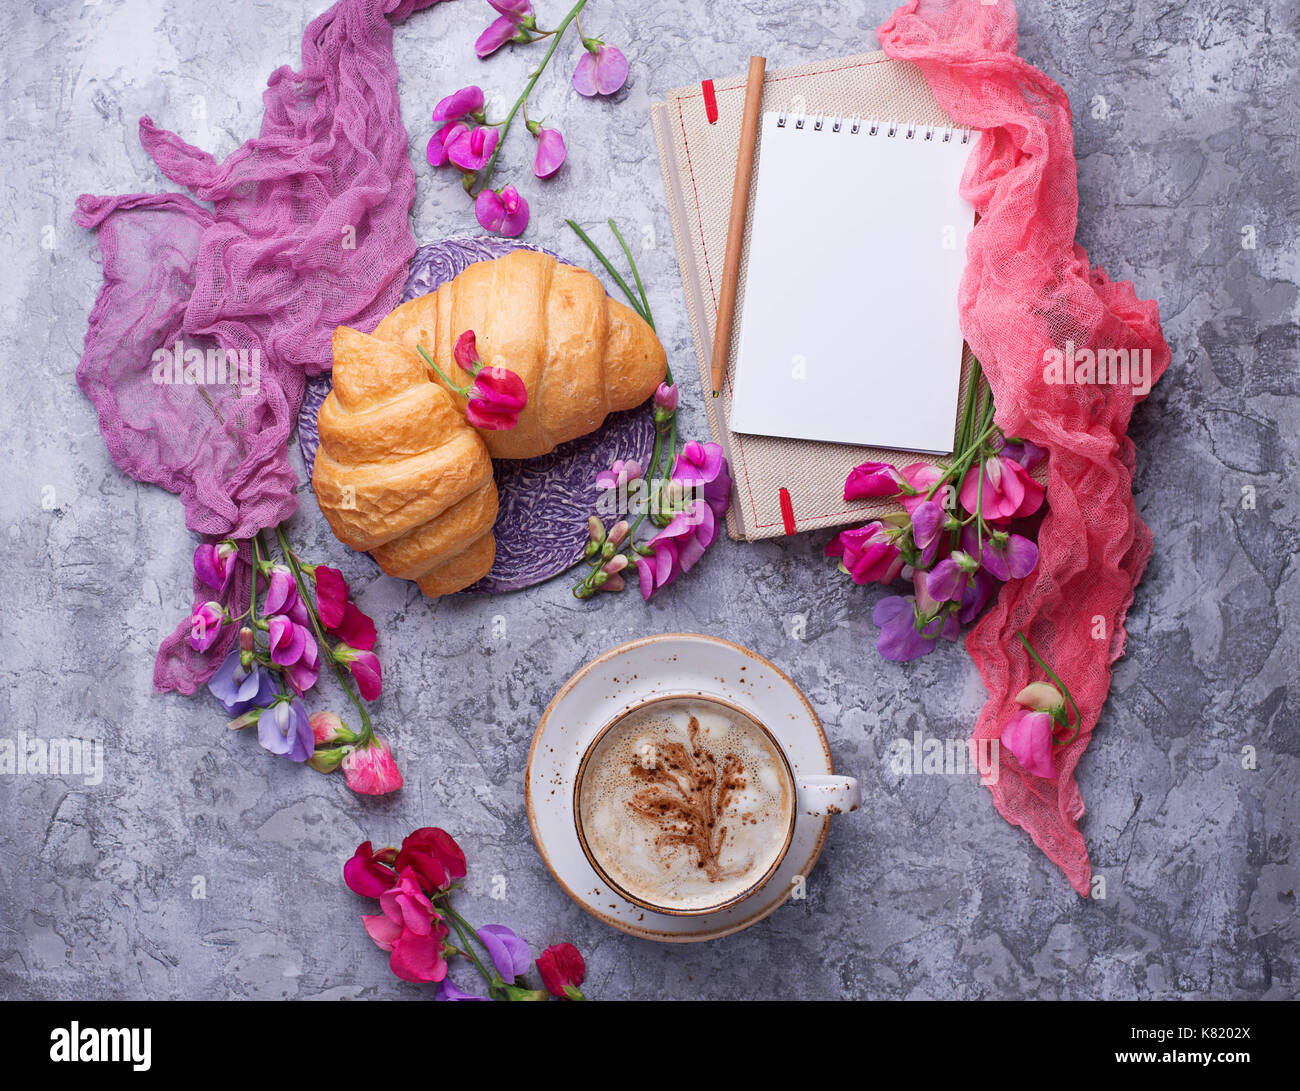 Coffee, croissants, flower and notebook.  - Stock Image